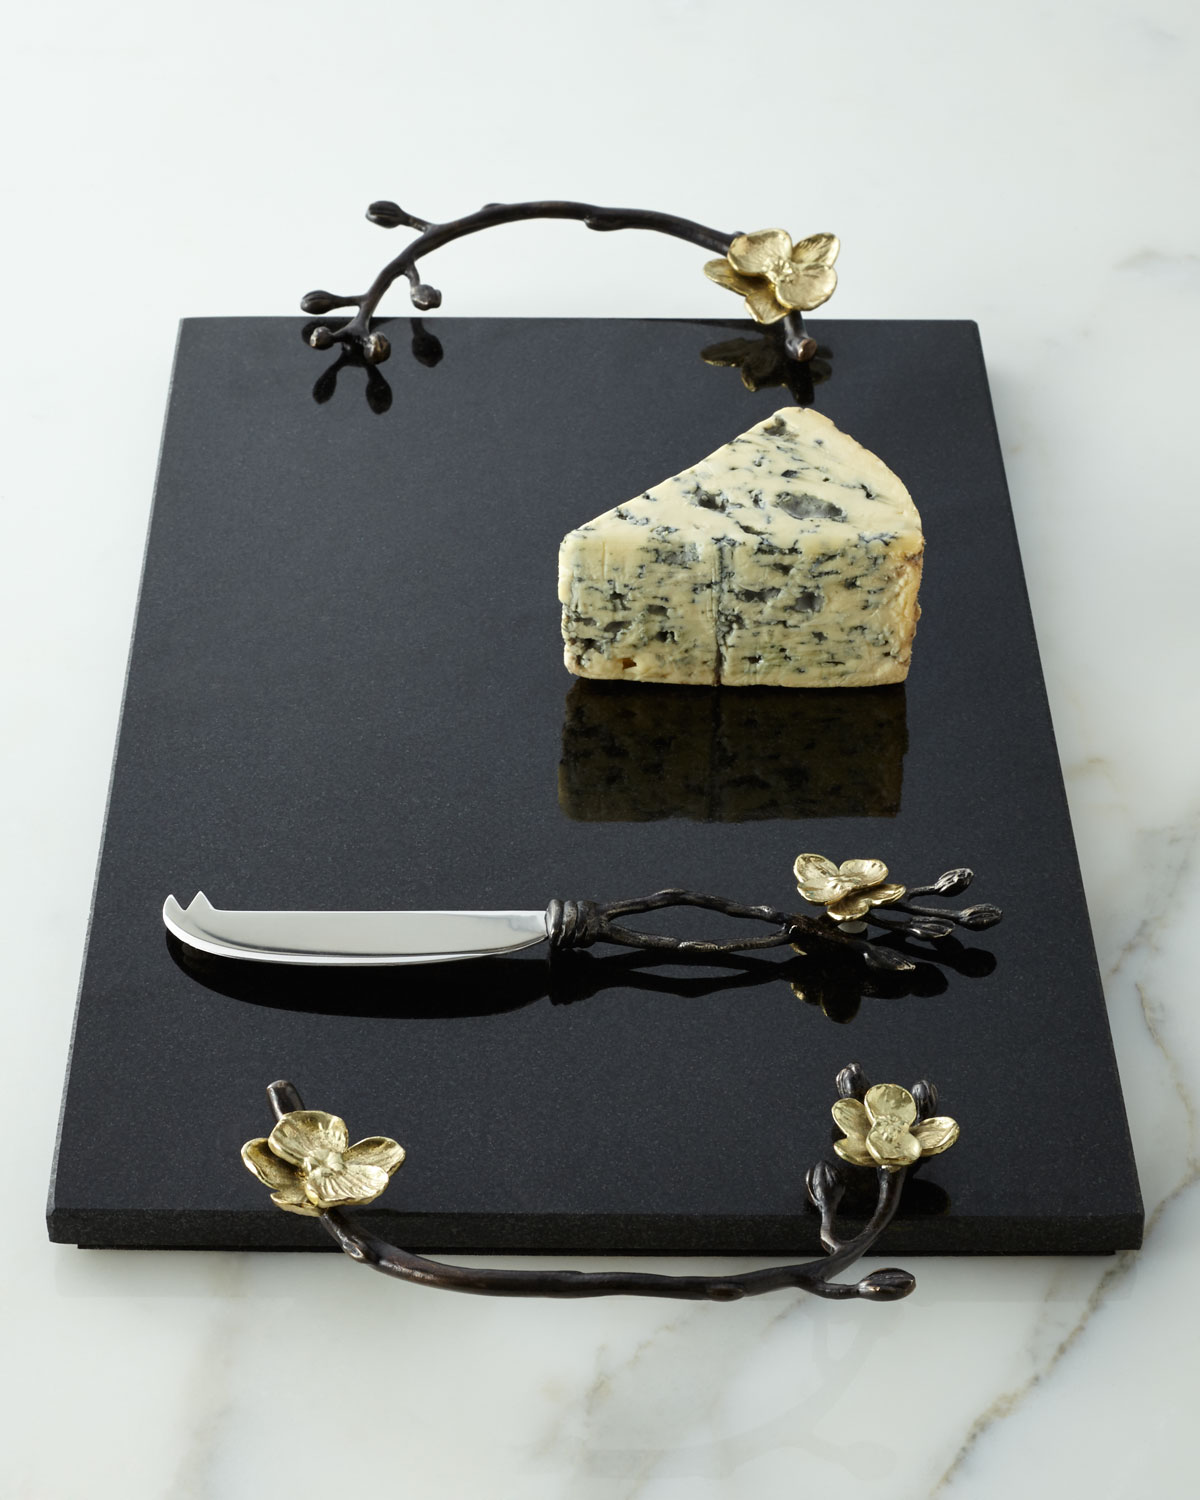 49484a617f82 Michael Aram Gold Orchid Cheese Board   Knife